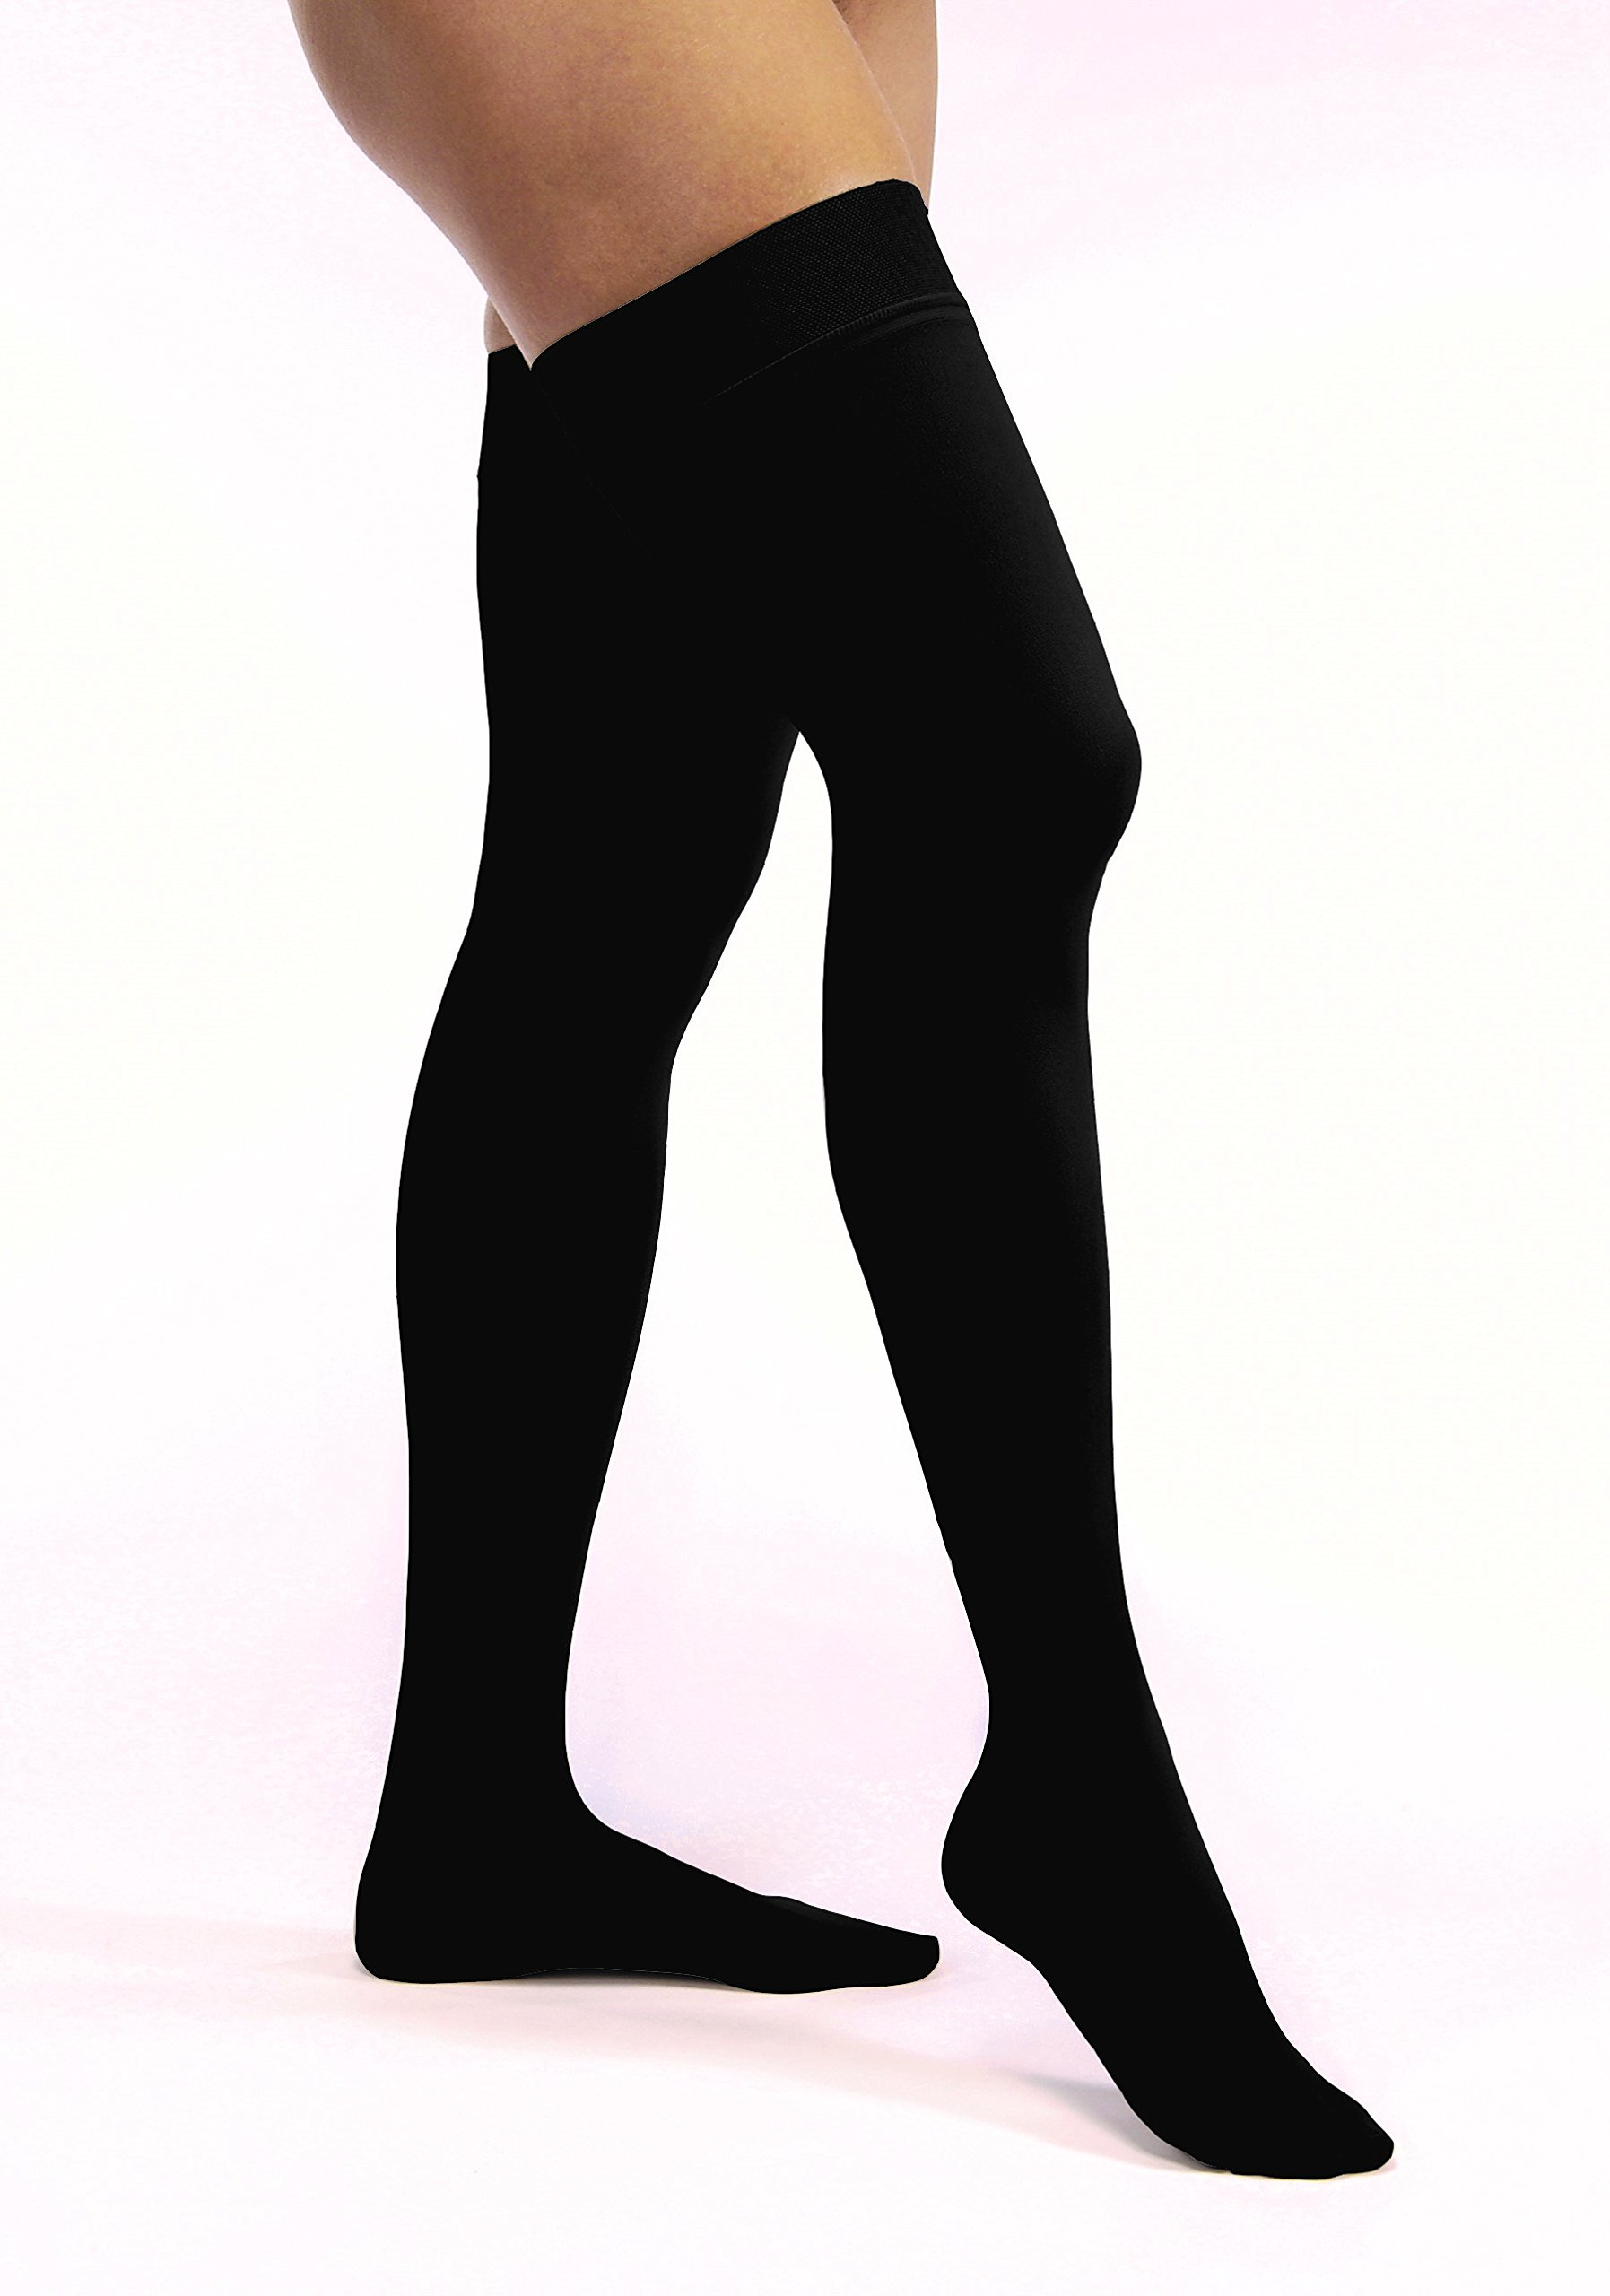 Women's Opaque 30-40 mmHg Closed Toe Thigh High Extra Firm Support Stocking Size: Small, Color: Classic Black